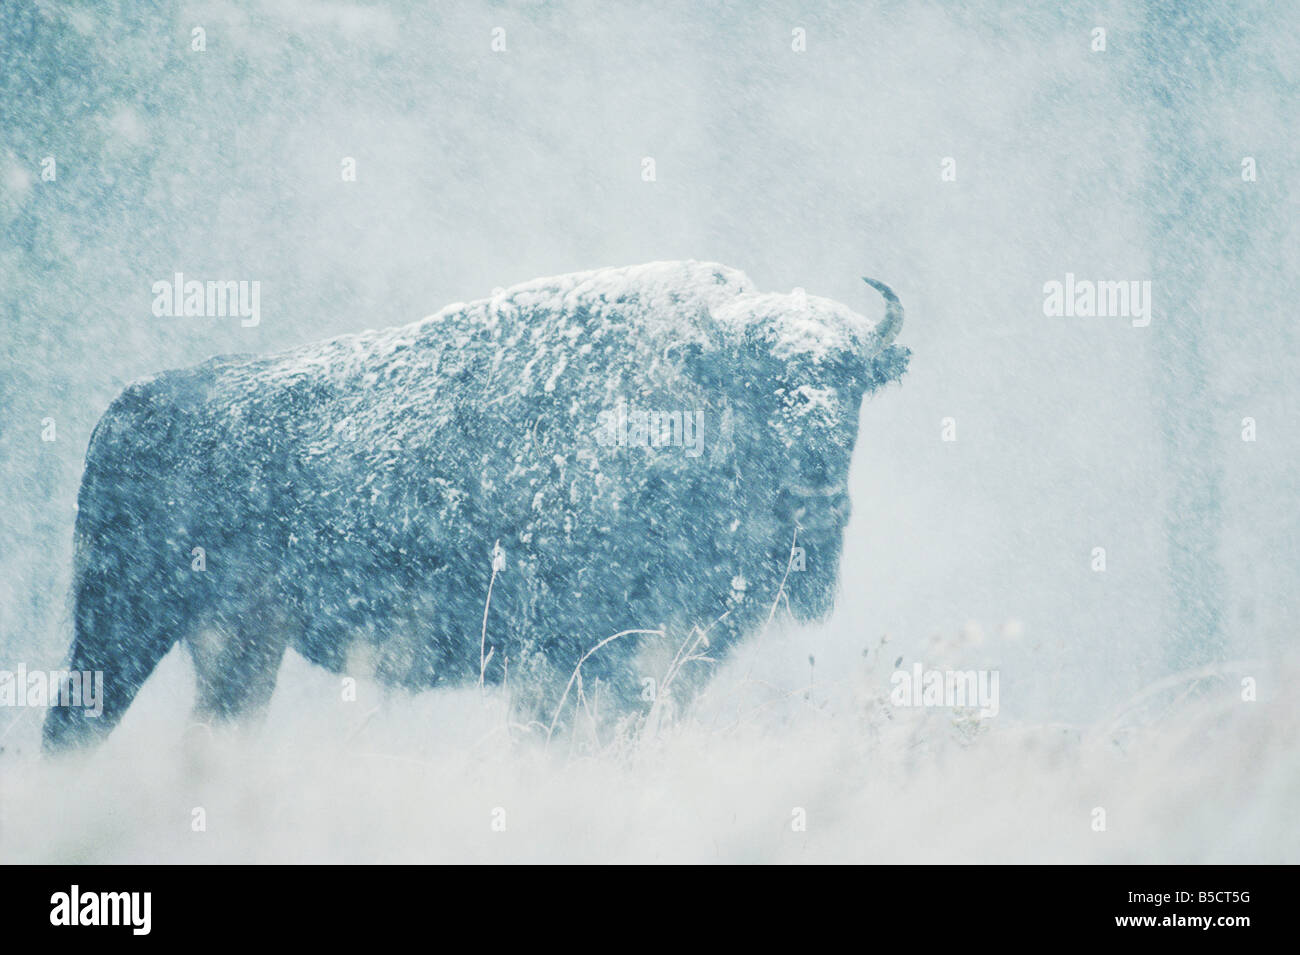 American Bison Bison bison bison adulte en tempête de neige, Custer State Park dans le Dakota du Sud USA Photo Stock